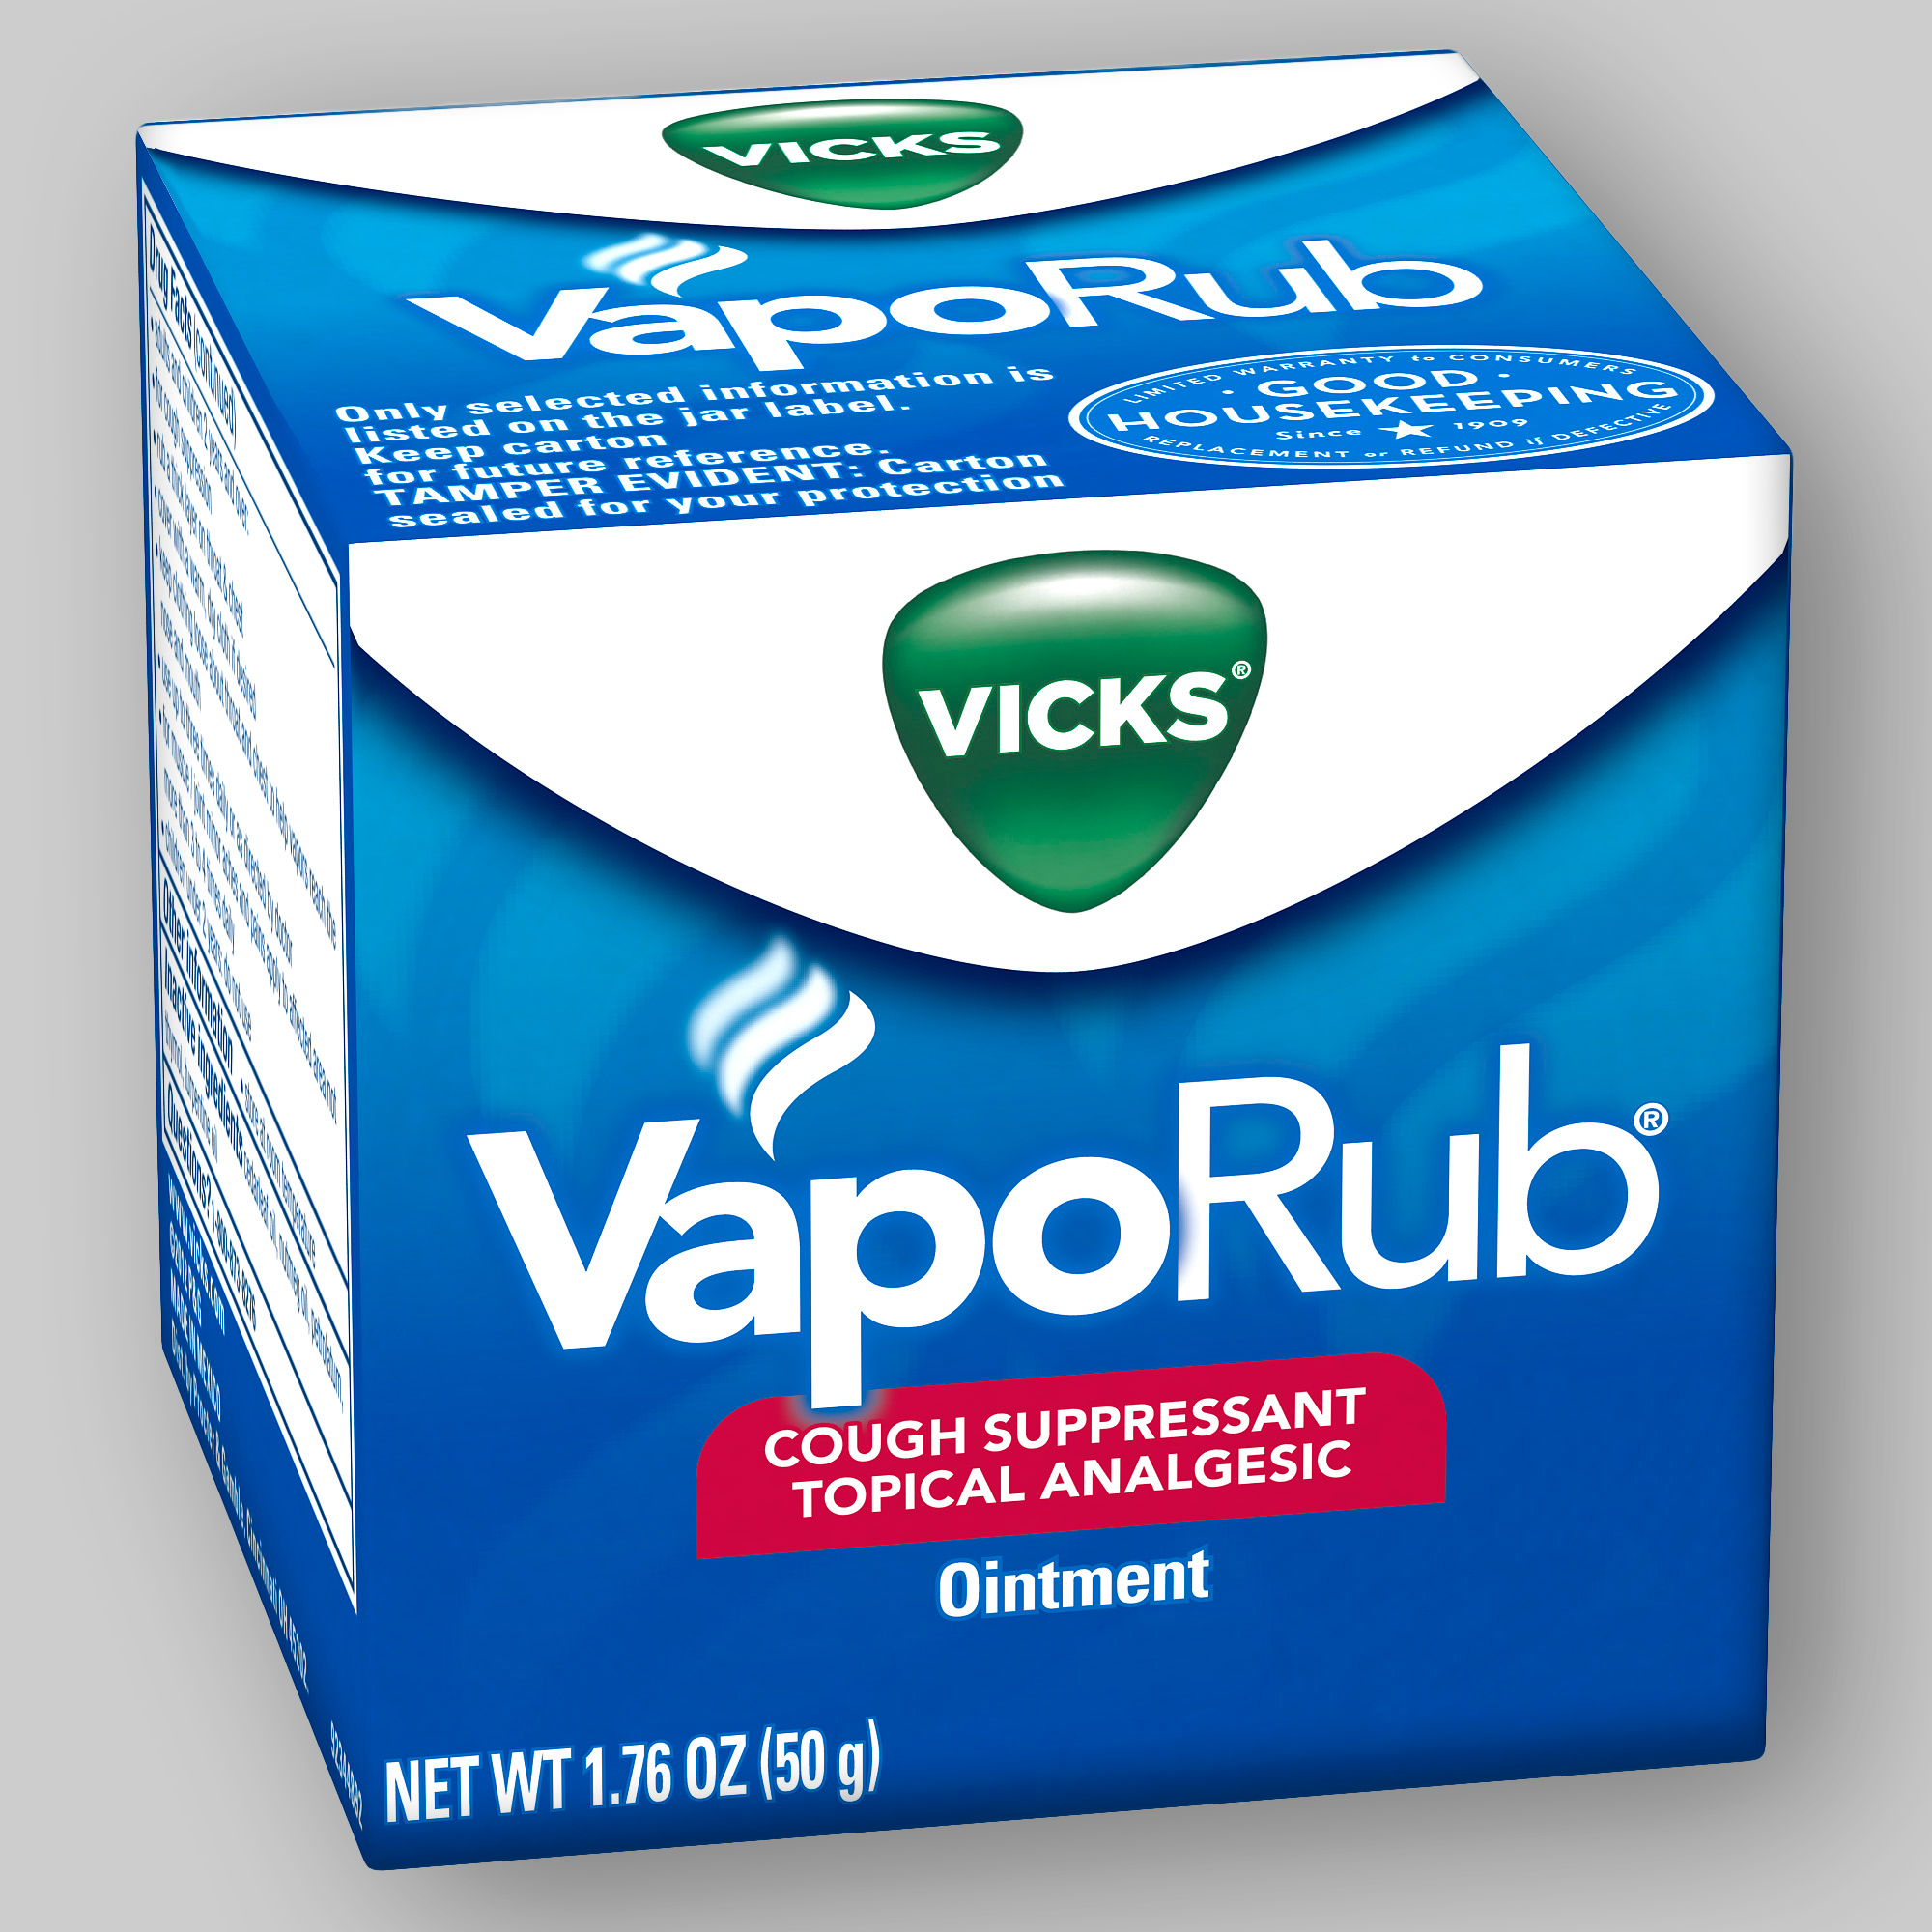 Can soothing brand, Vicks,trusted by moms, find new ways to offer relief through other health and wellness products?